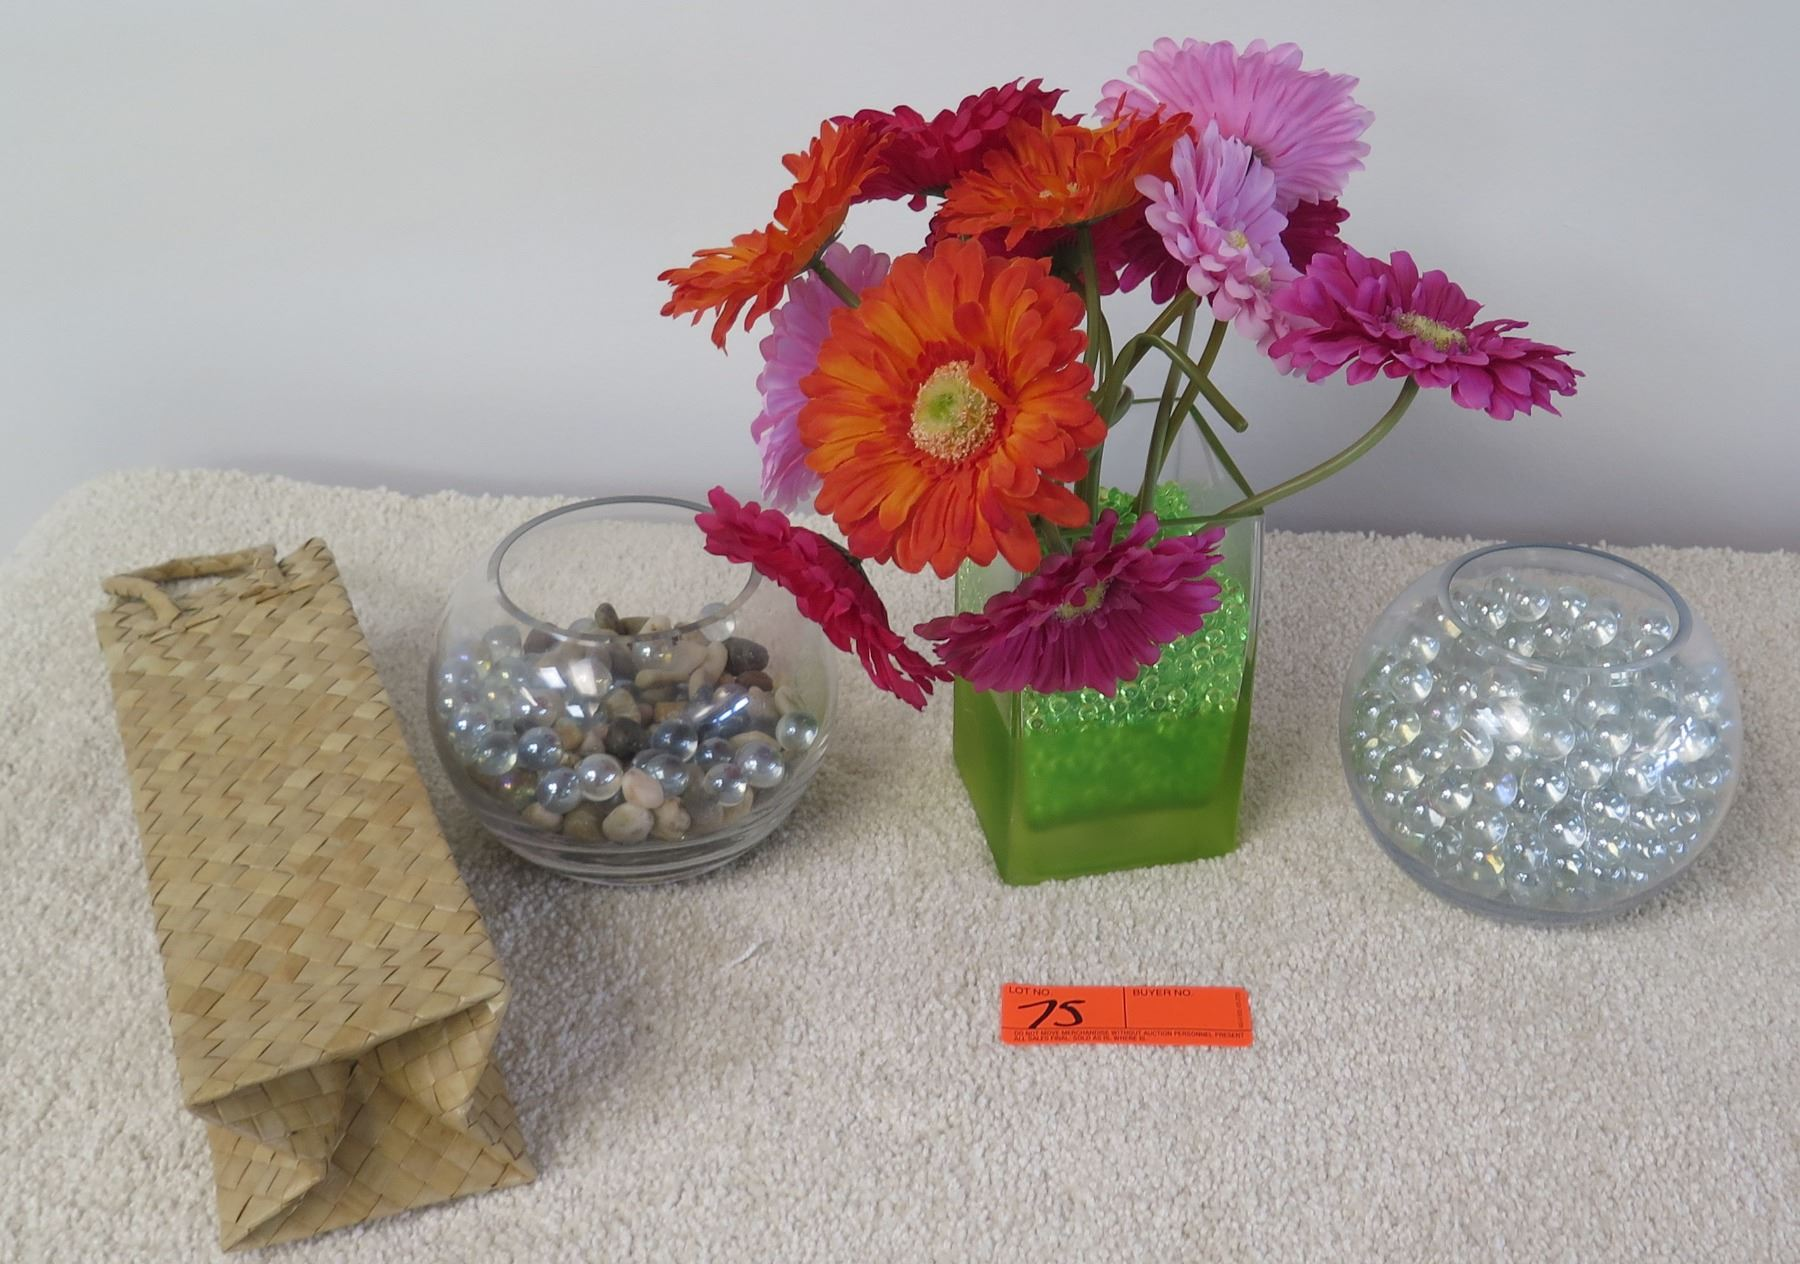 Image 1 qty 3 decorative glass vases glass beads faux daisies